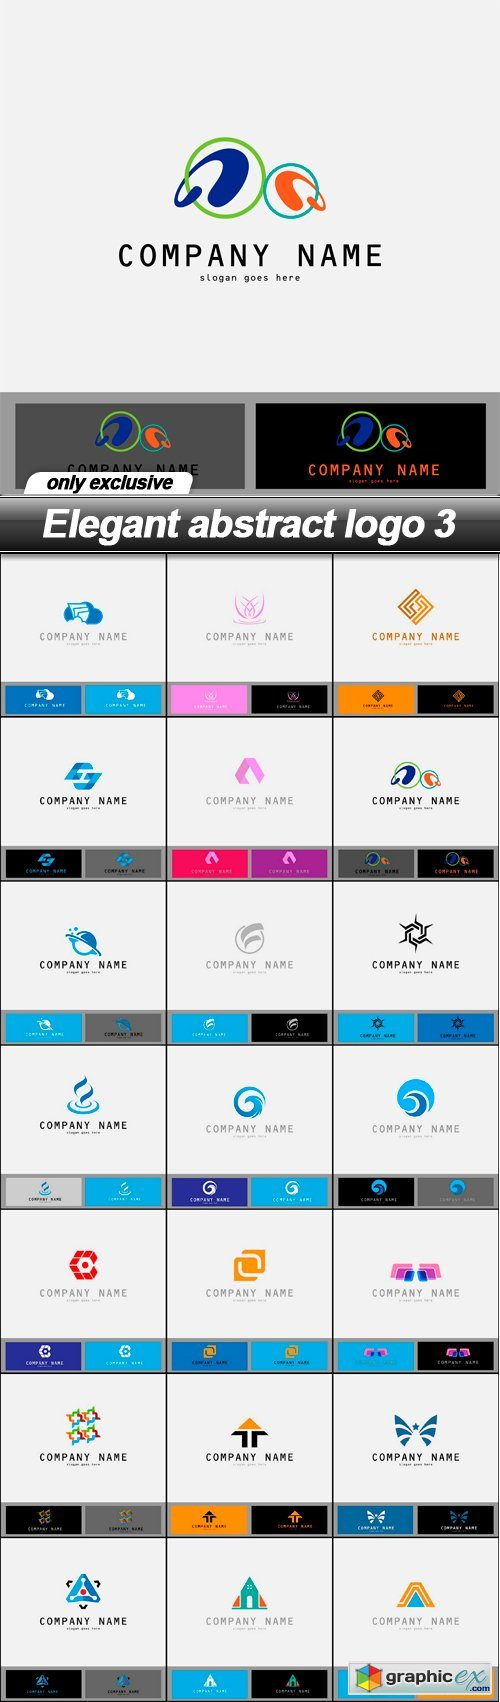 Elegant abstract logo 3 - 21 EPS